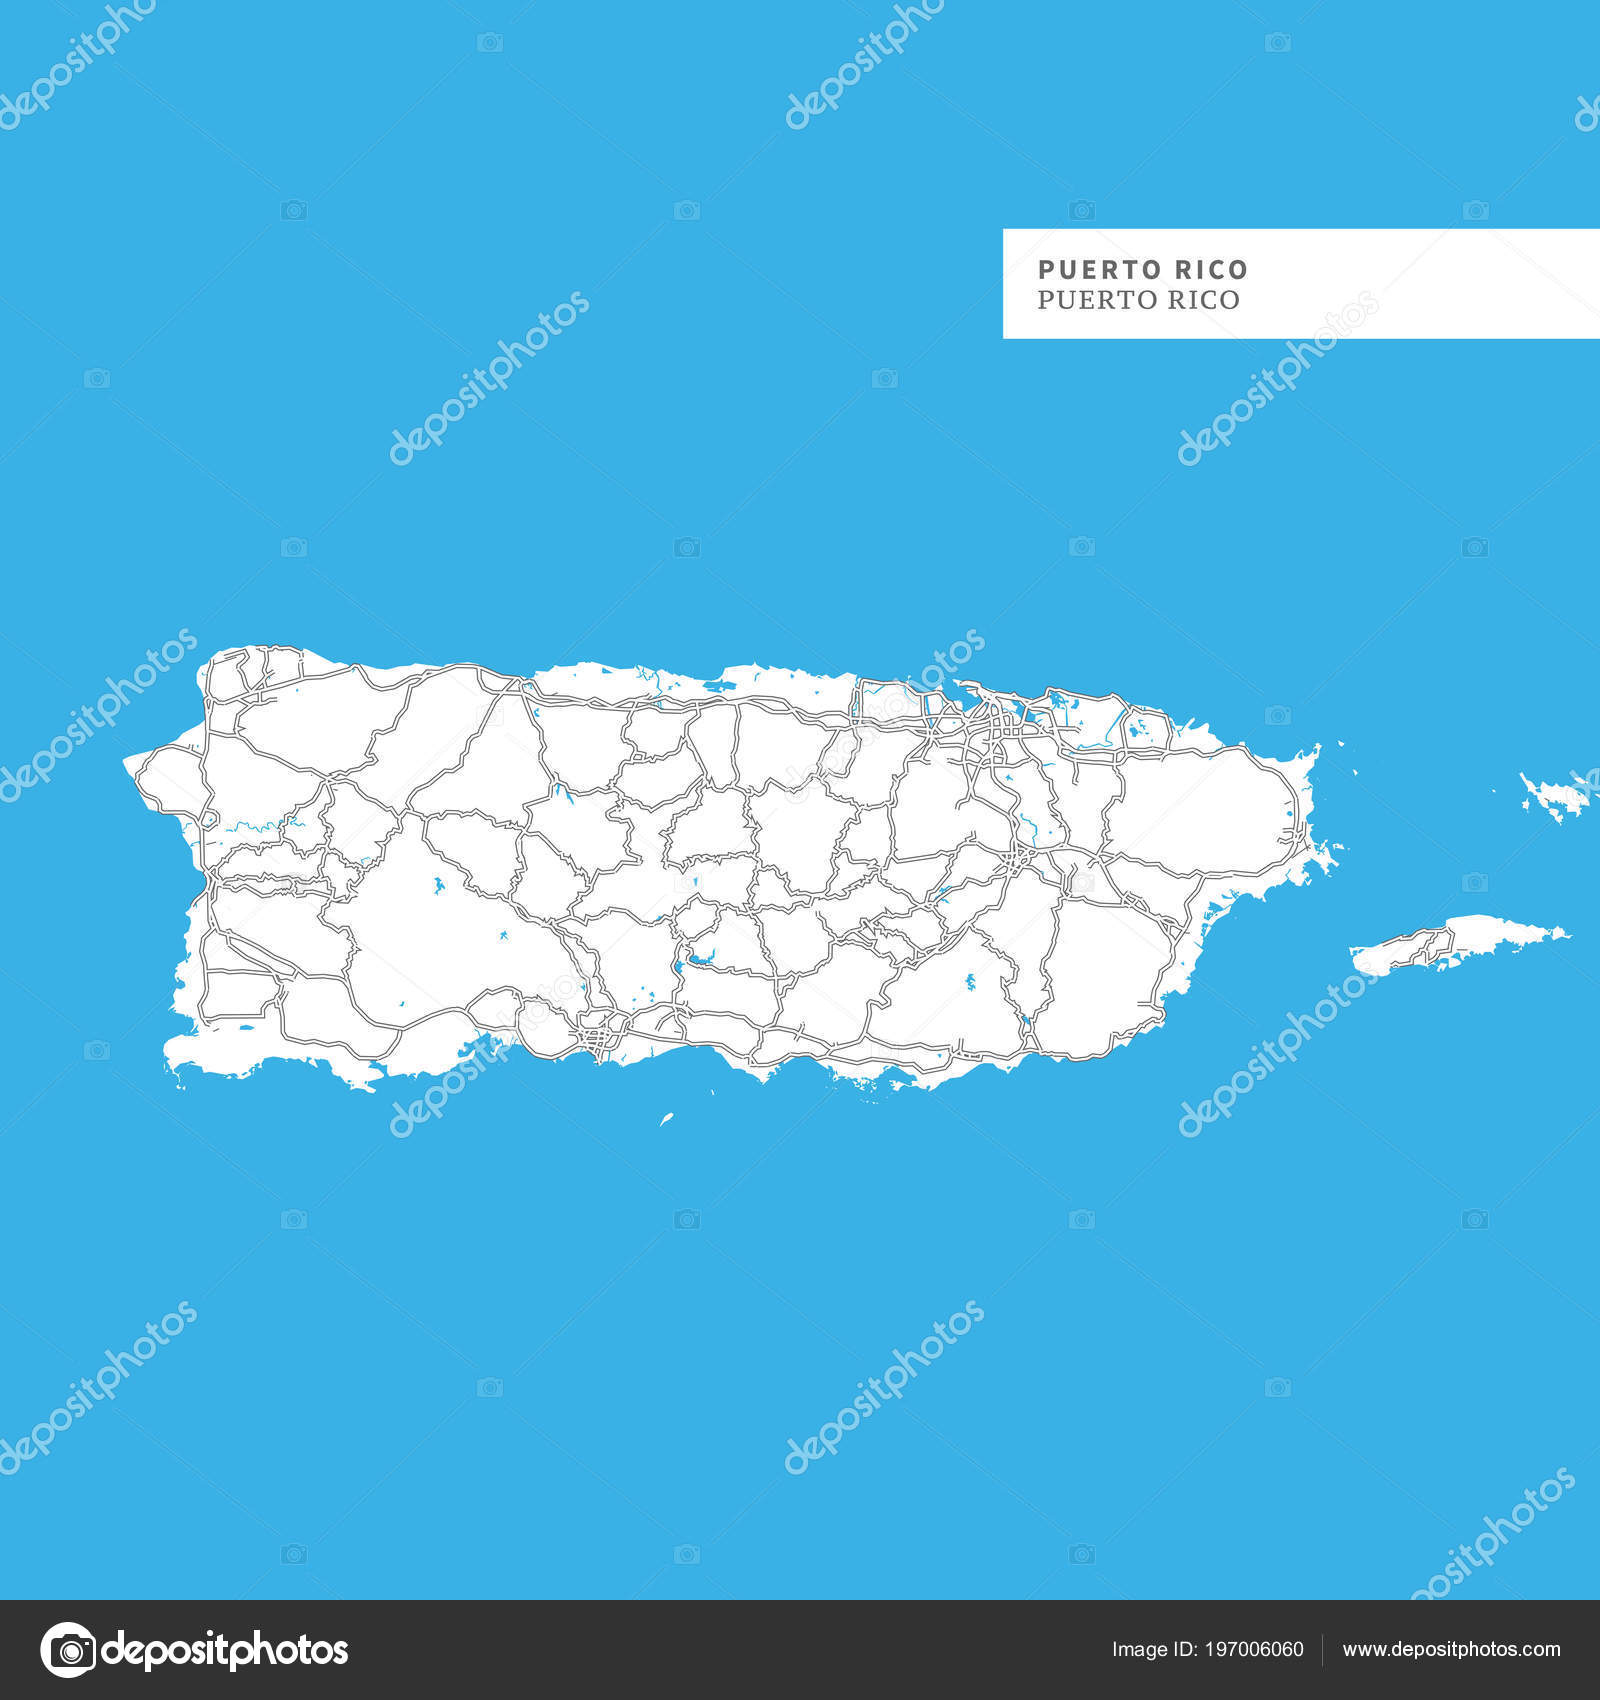 Map Puerto Rico Island Puerto Rico Contains Geography